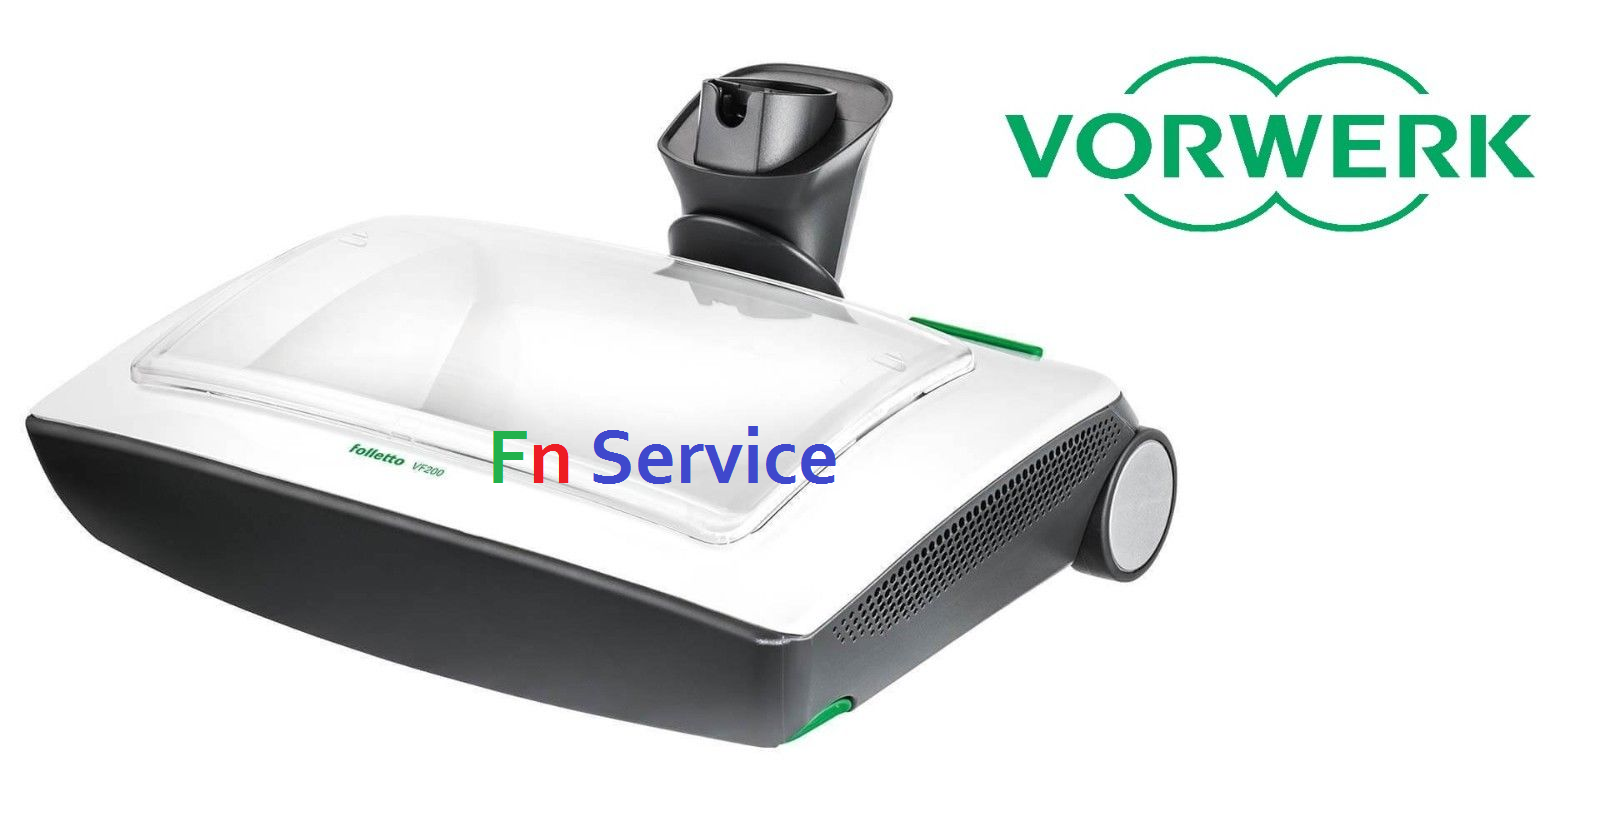 Vorwerk Folletto VF200 Accessorio Lavatappeti Per Vk 130 135 140 150 Vk 200